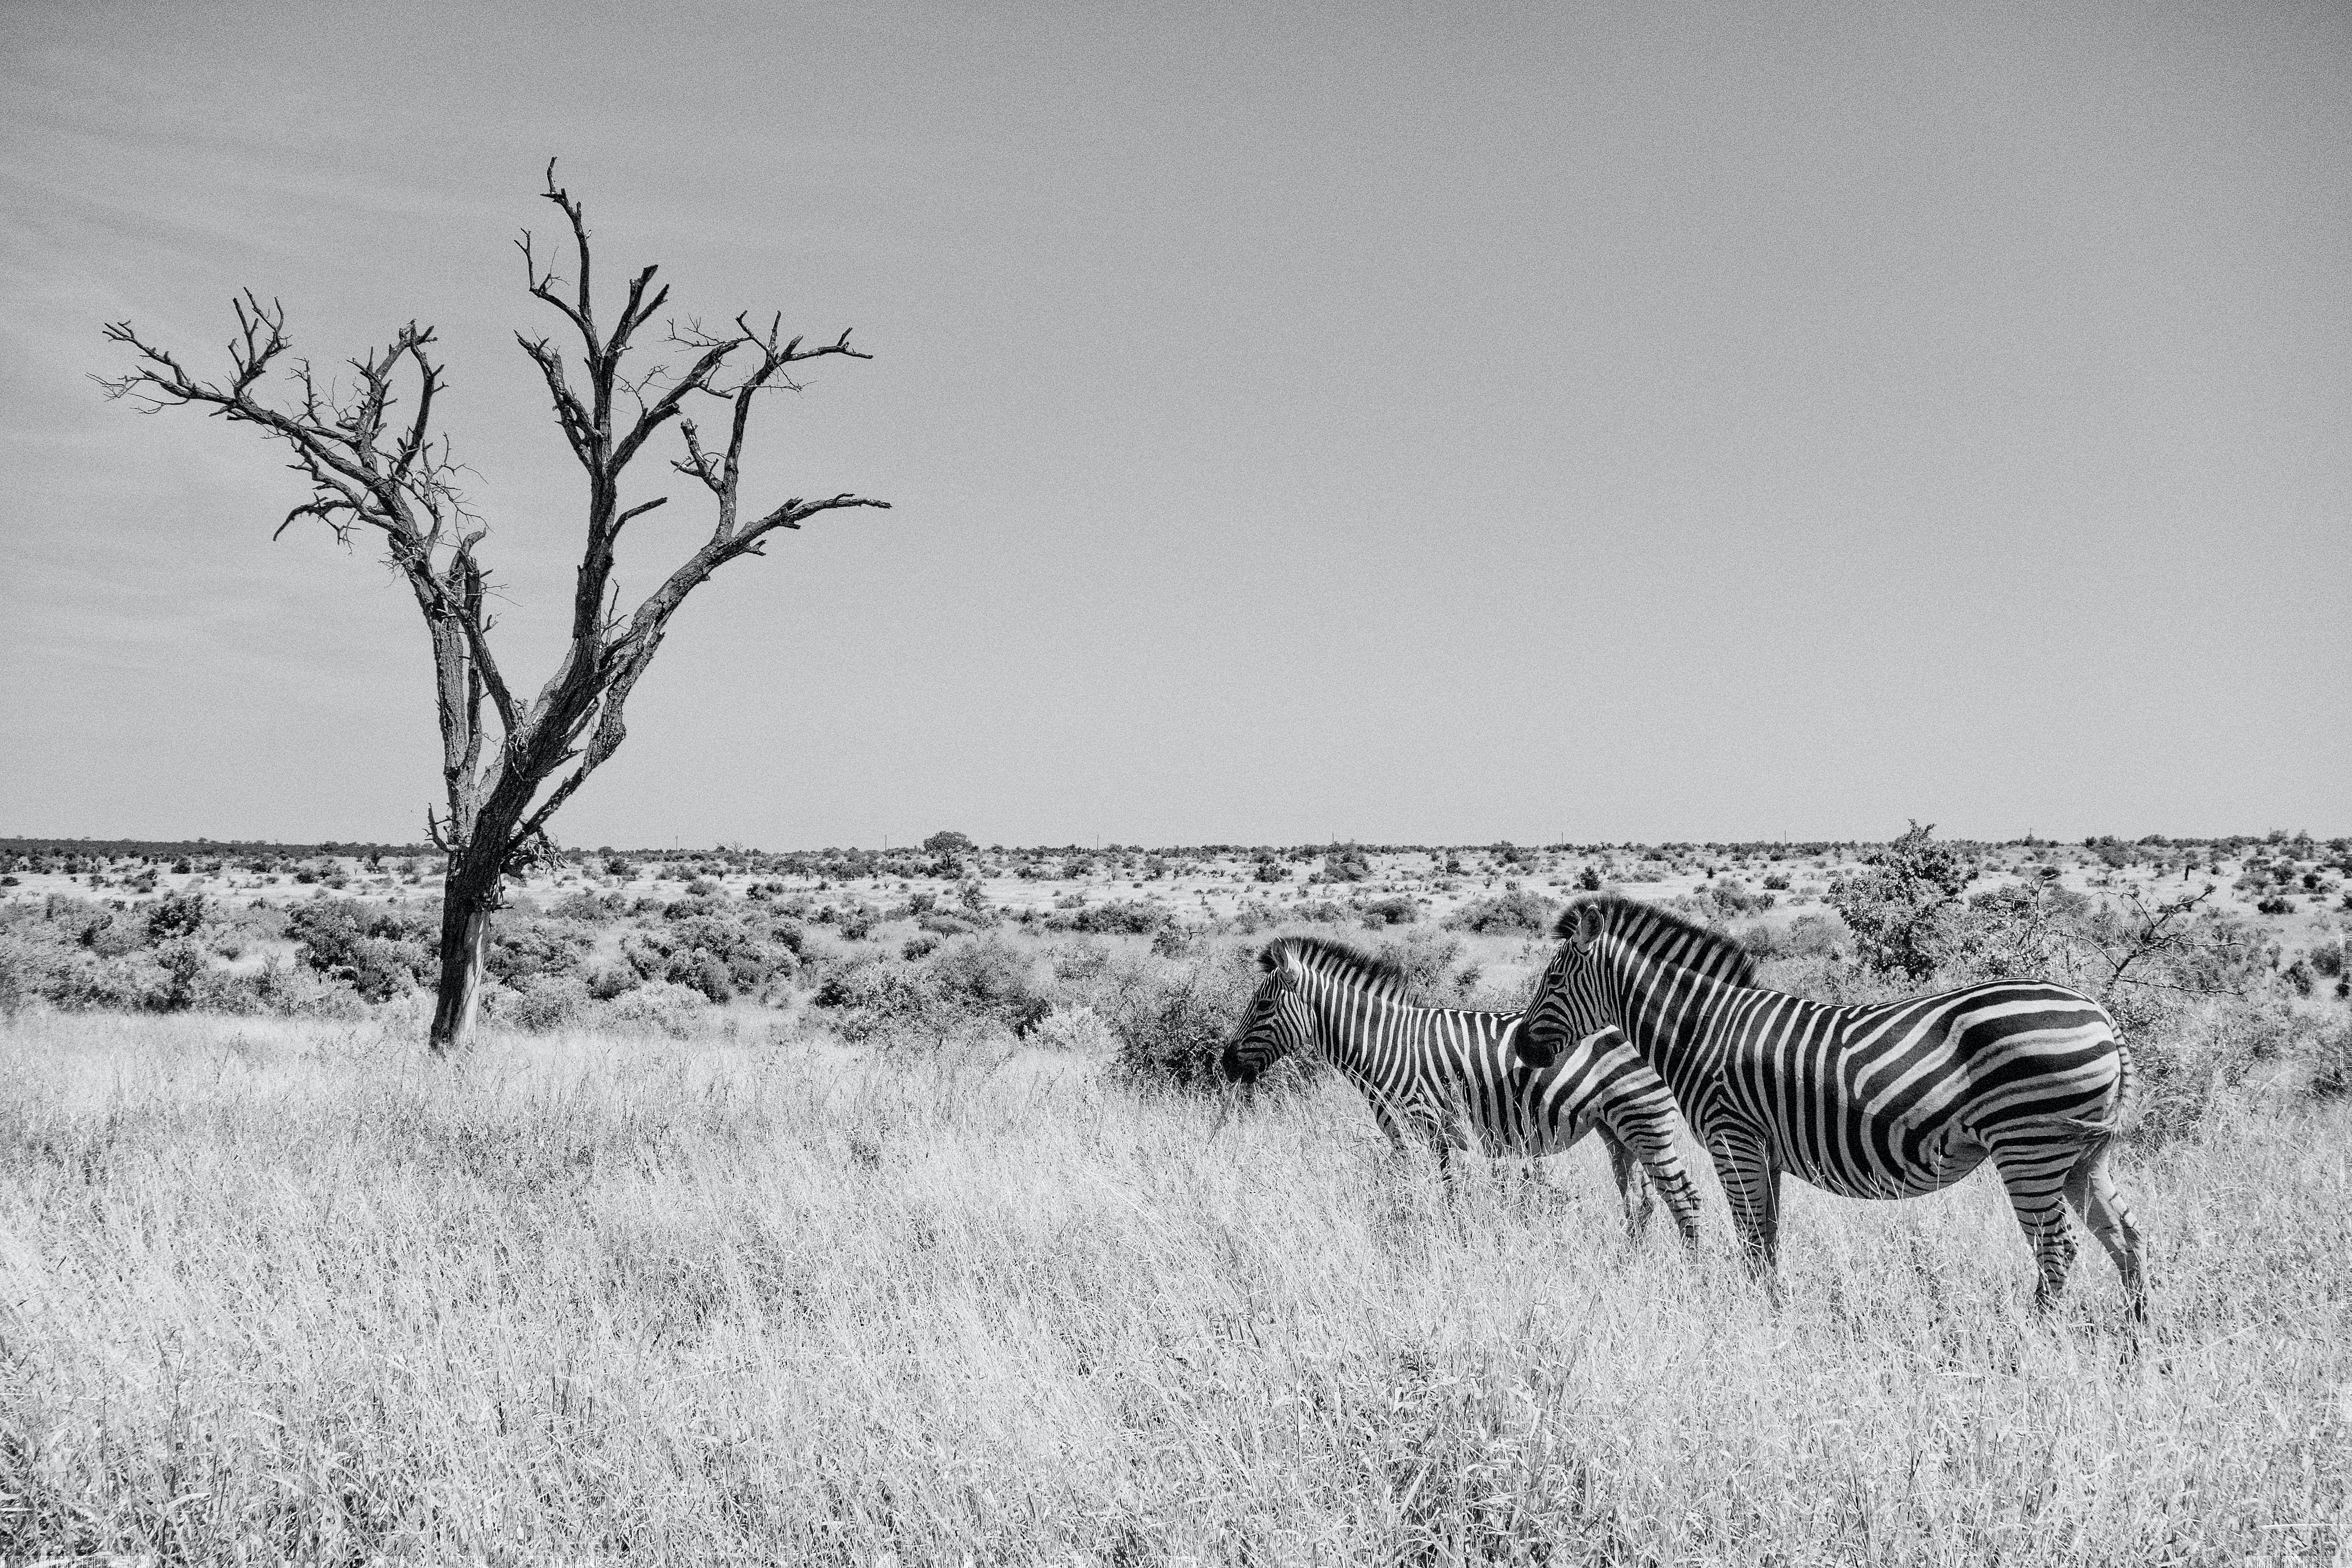 two zebras by the tree